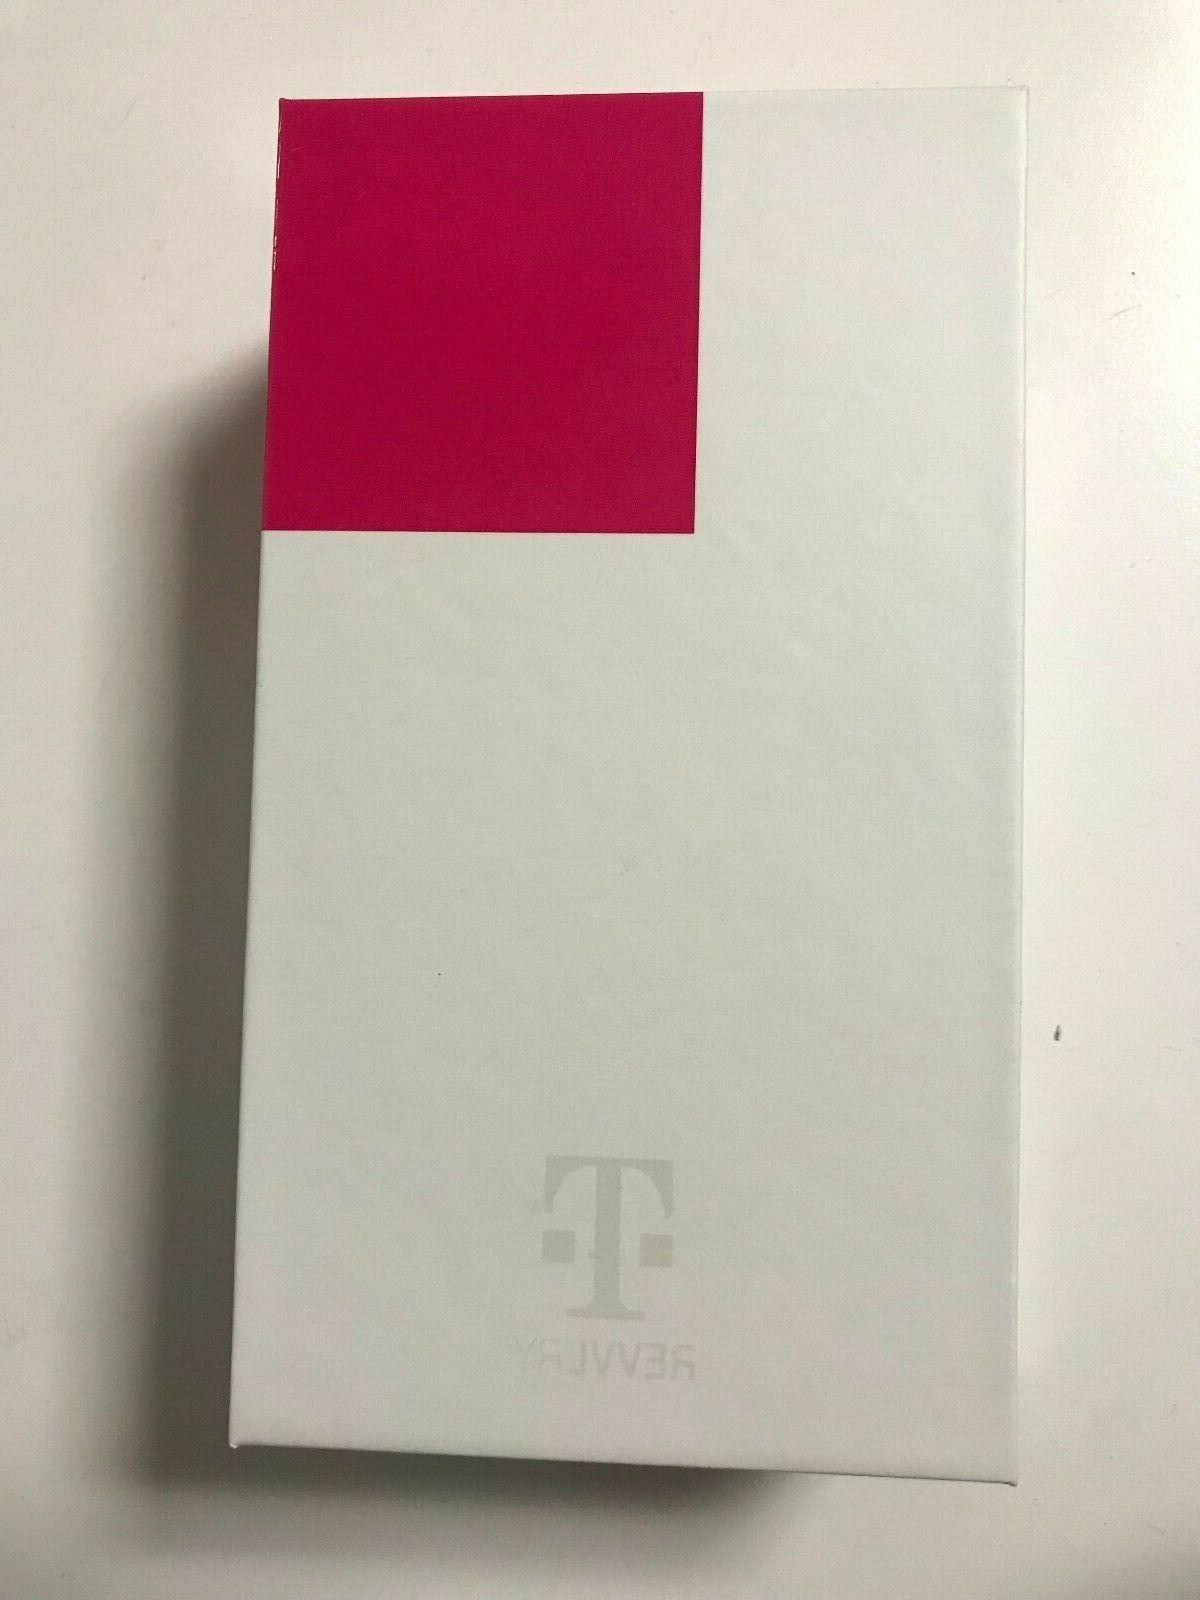 brand new sealed in box t mobile